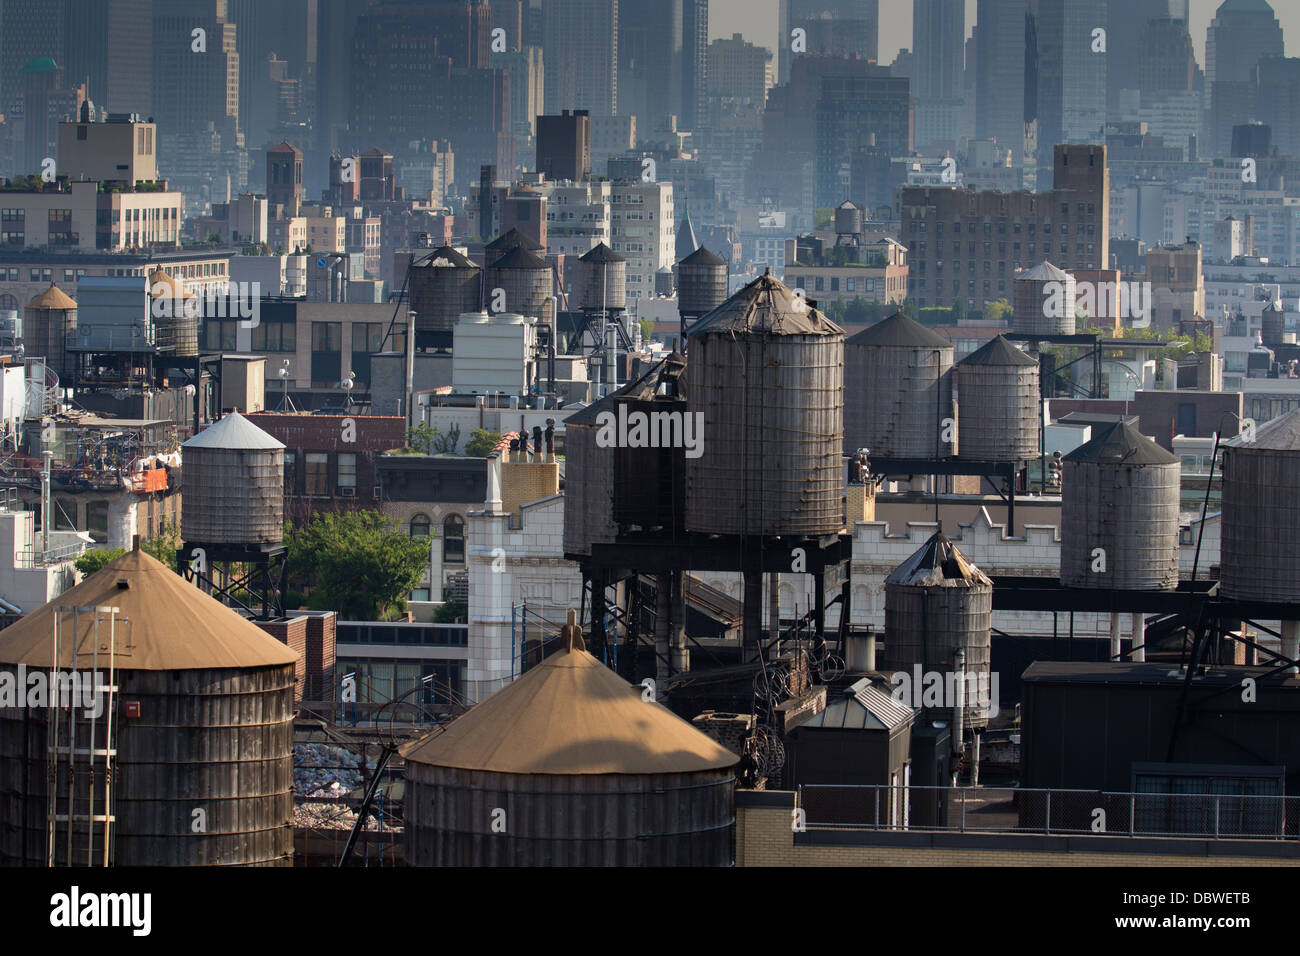 Water towers in New York CIty Stock Photo